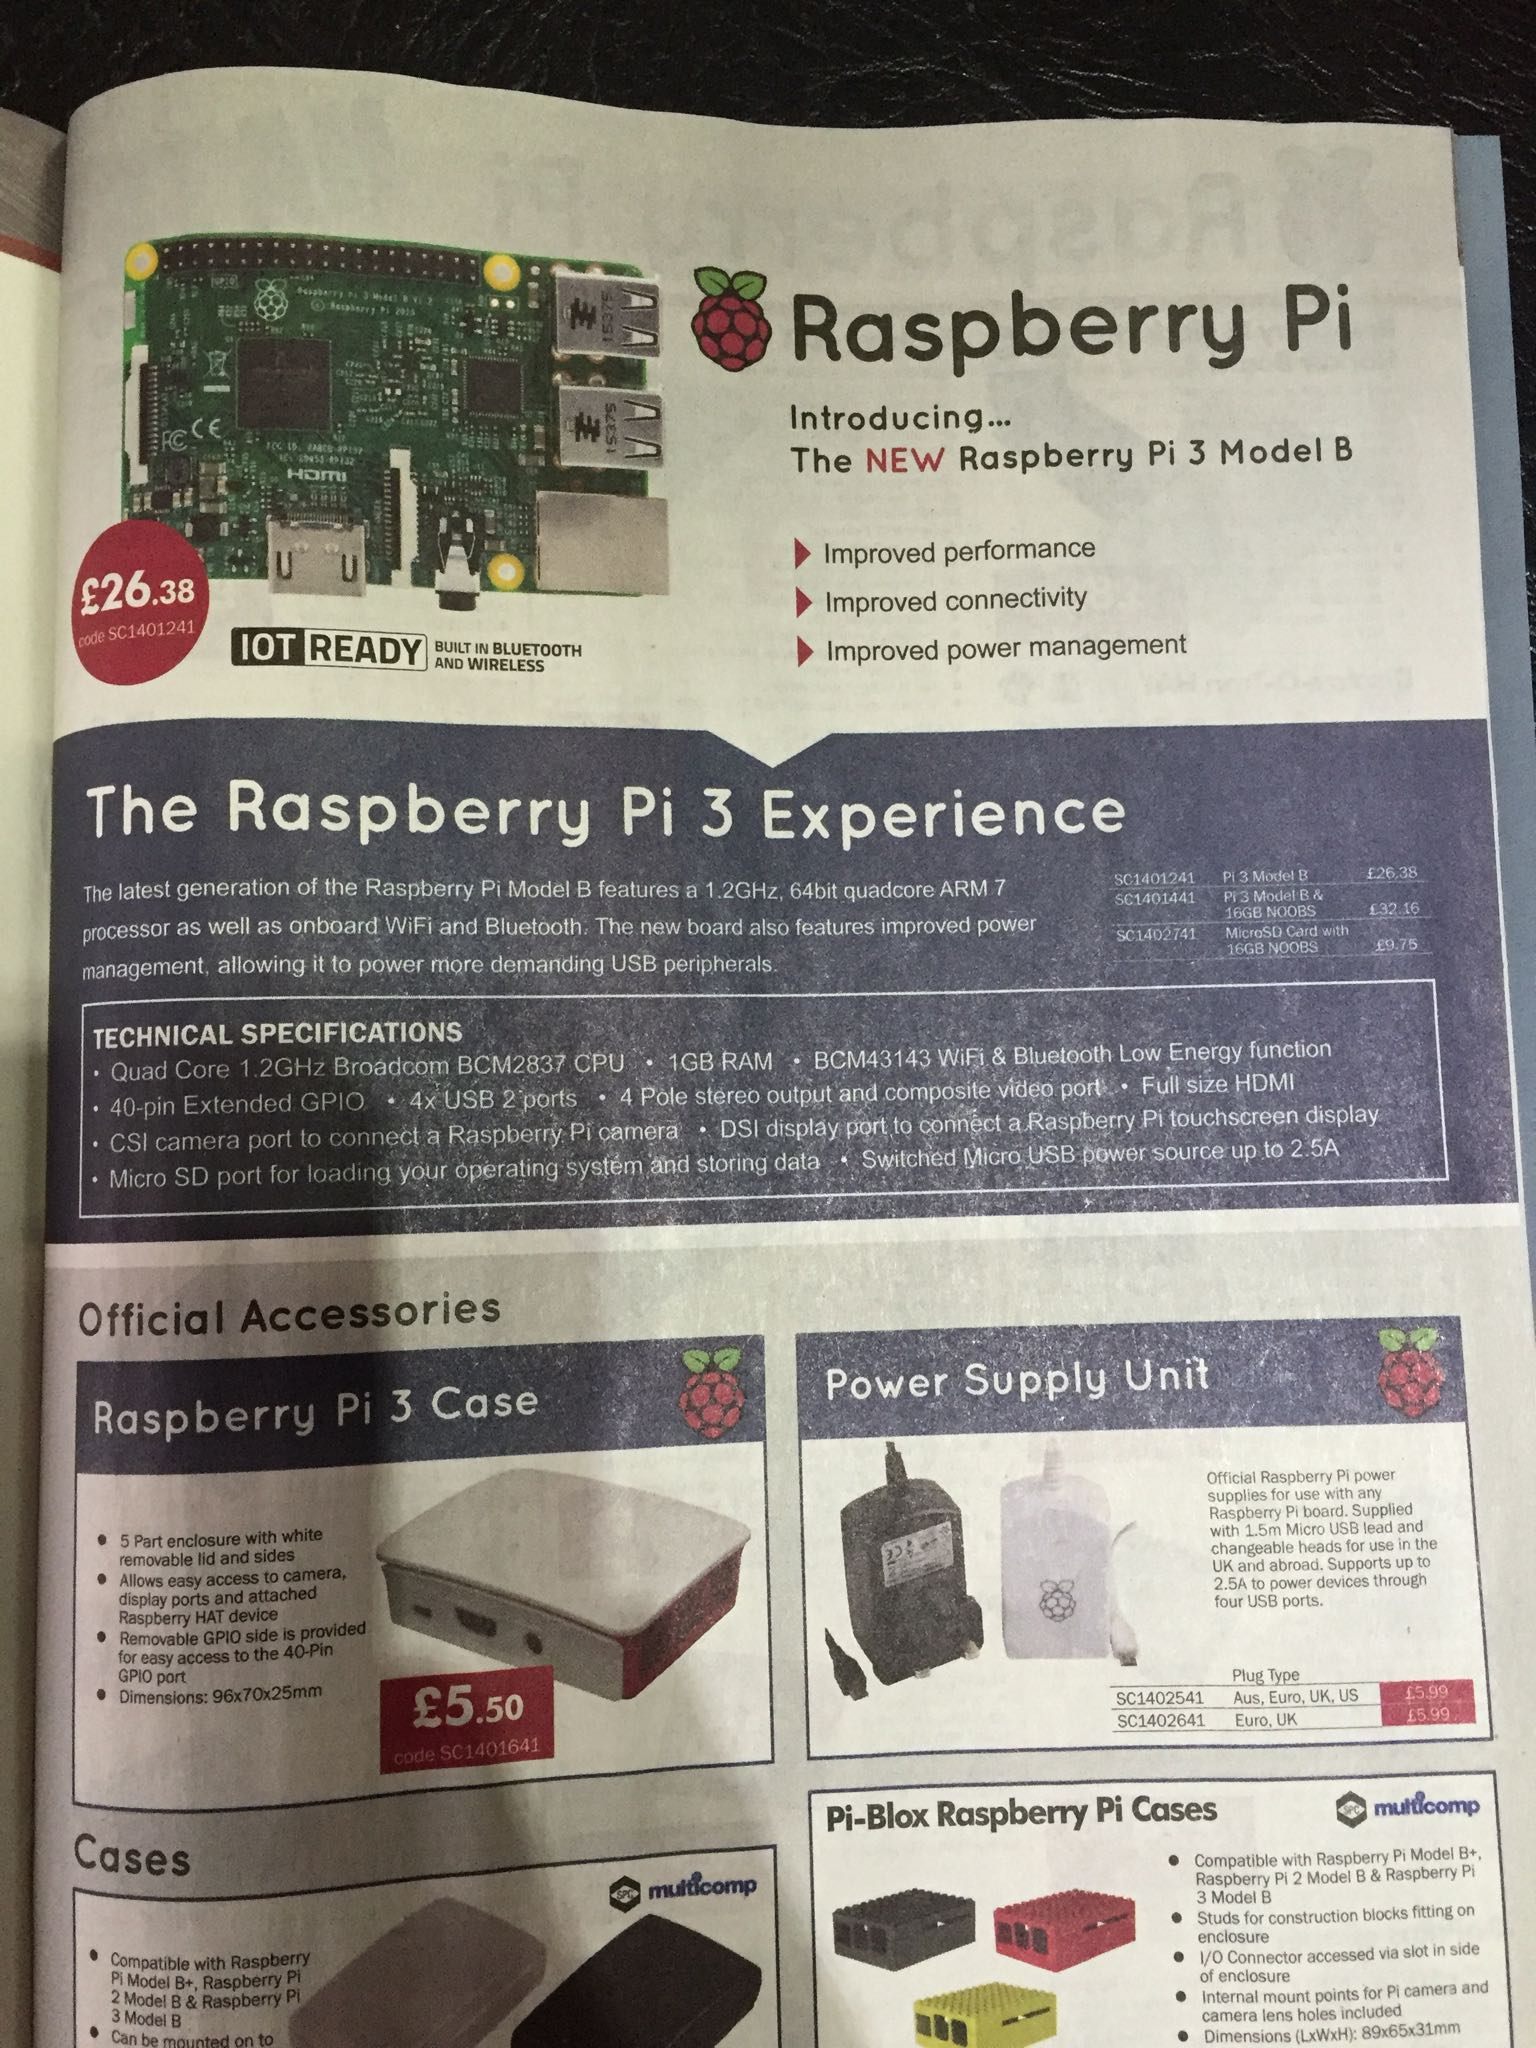 Raspberry Pi 3 To Cost $35